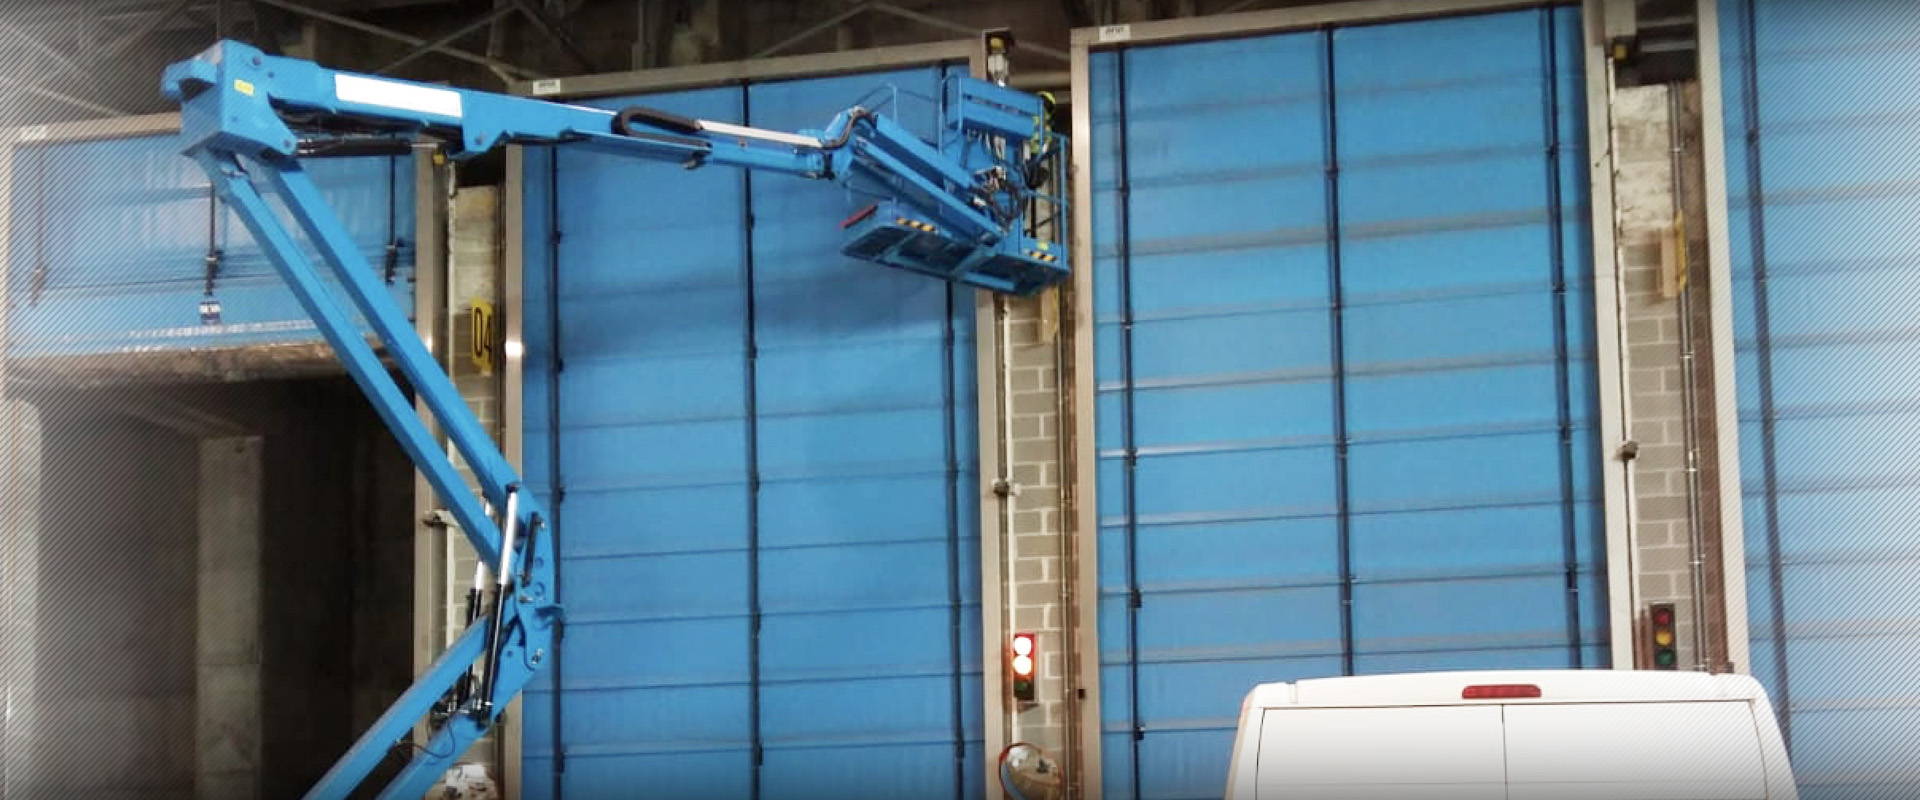 Maind Industrial Doors maintenance.jpg